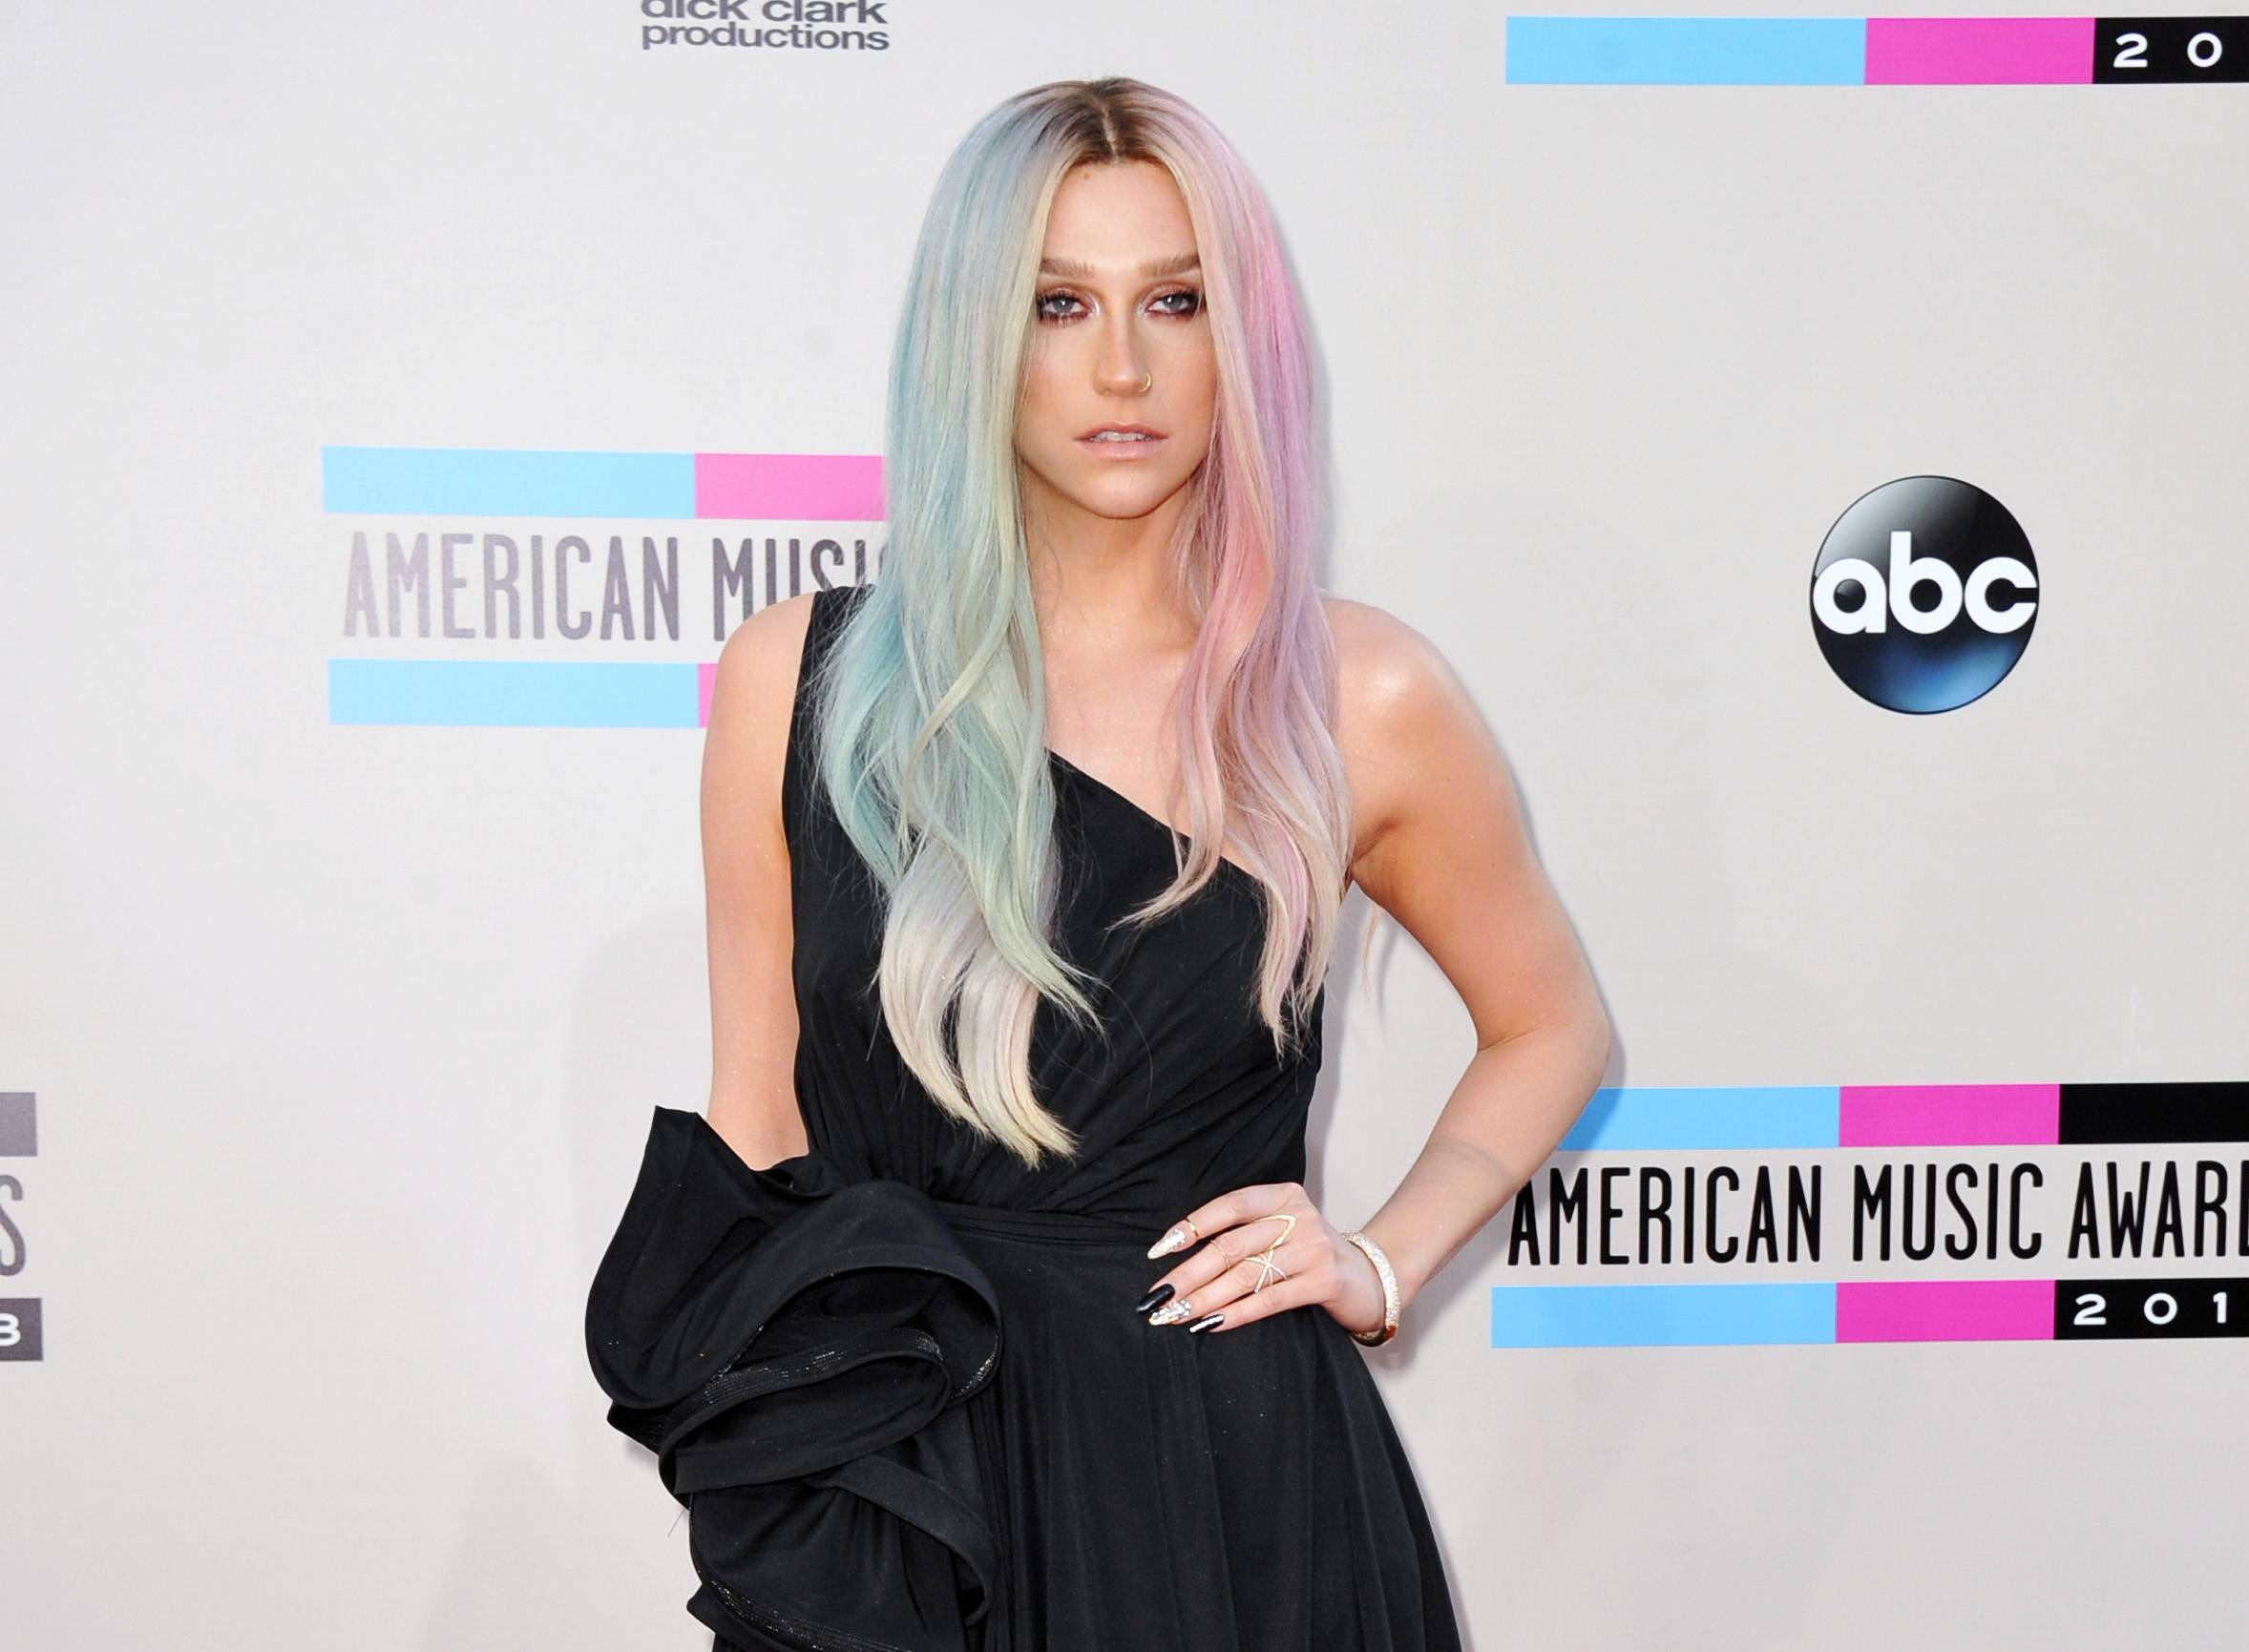 Ke$ha's representative confirmed Friday that the singer checked out of rehab for an eating disorder.